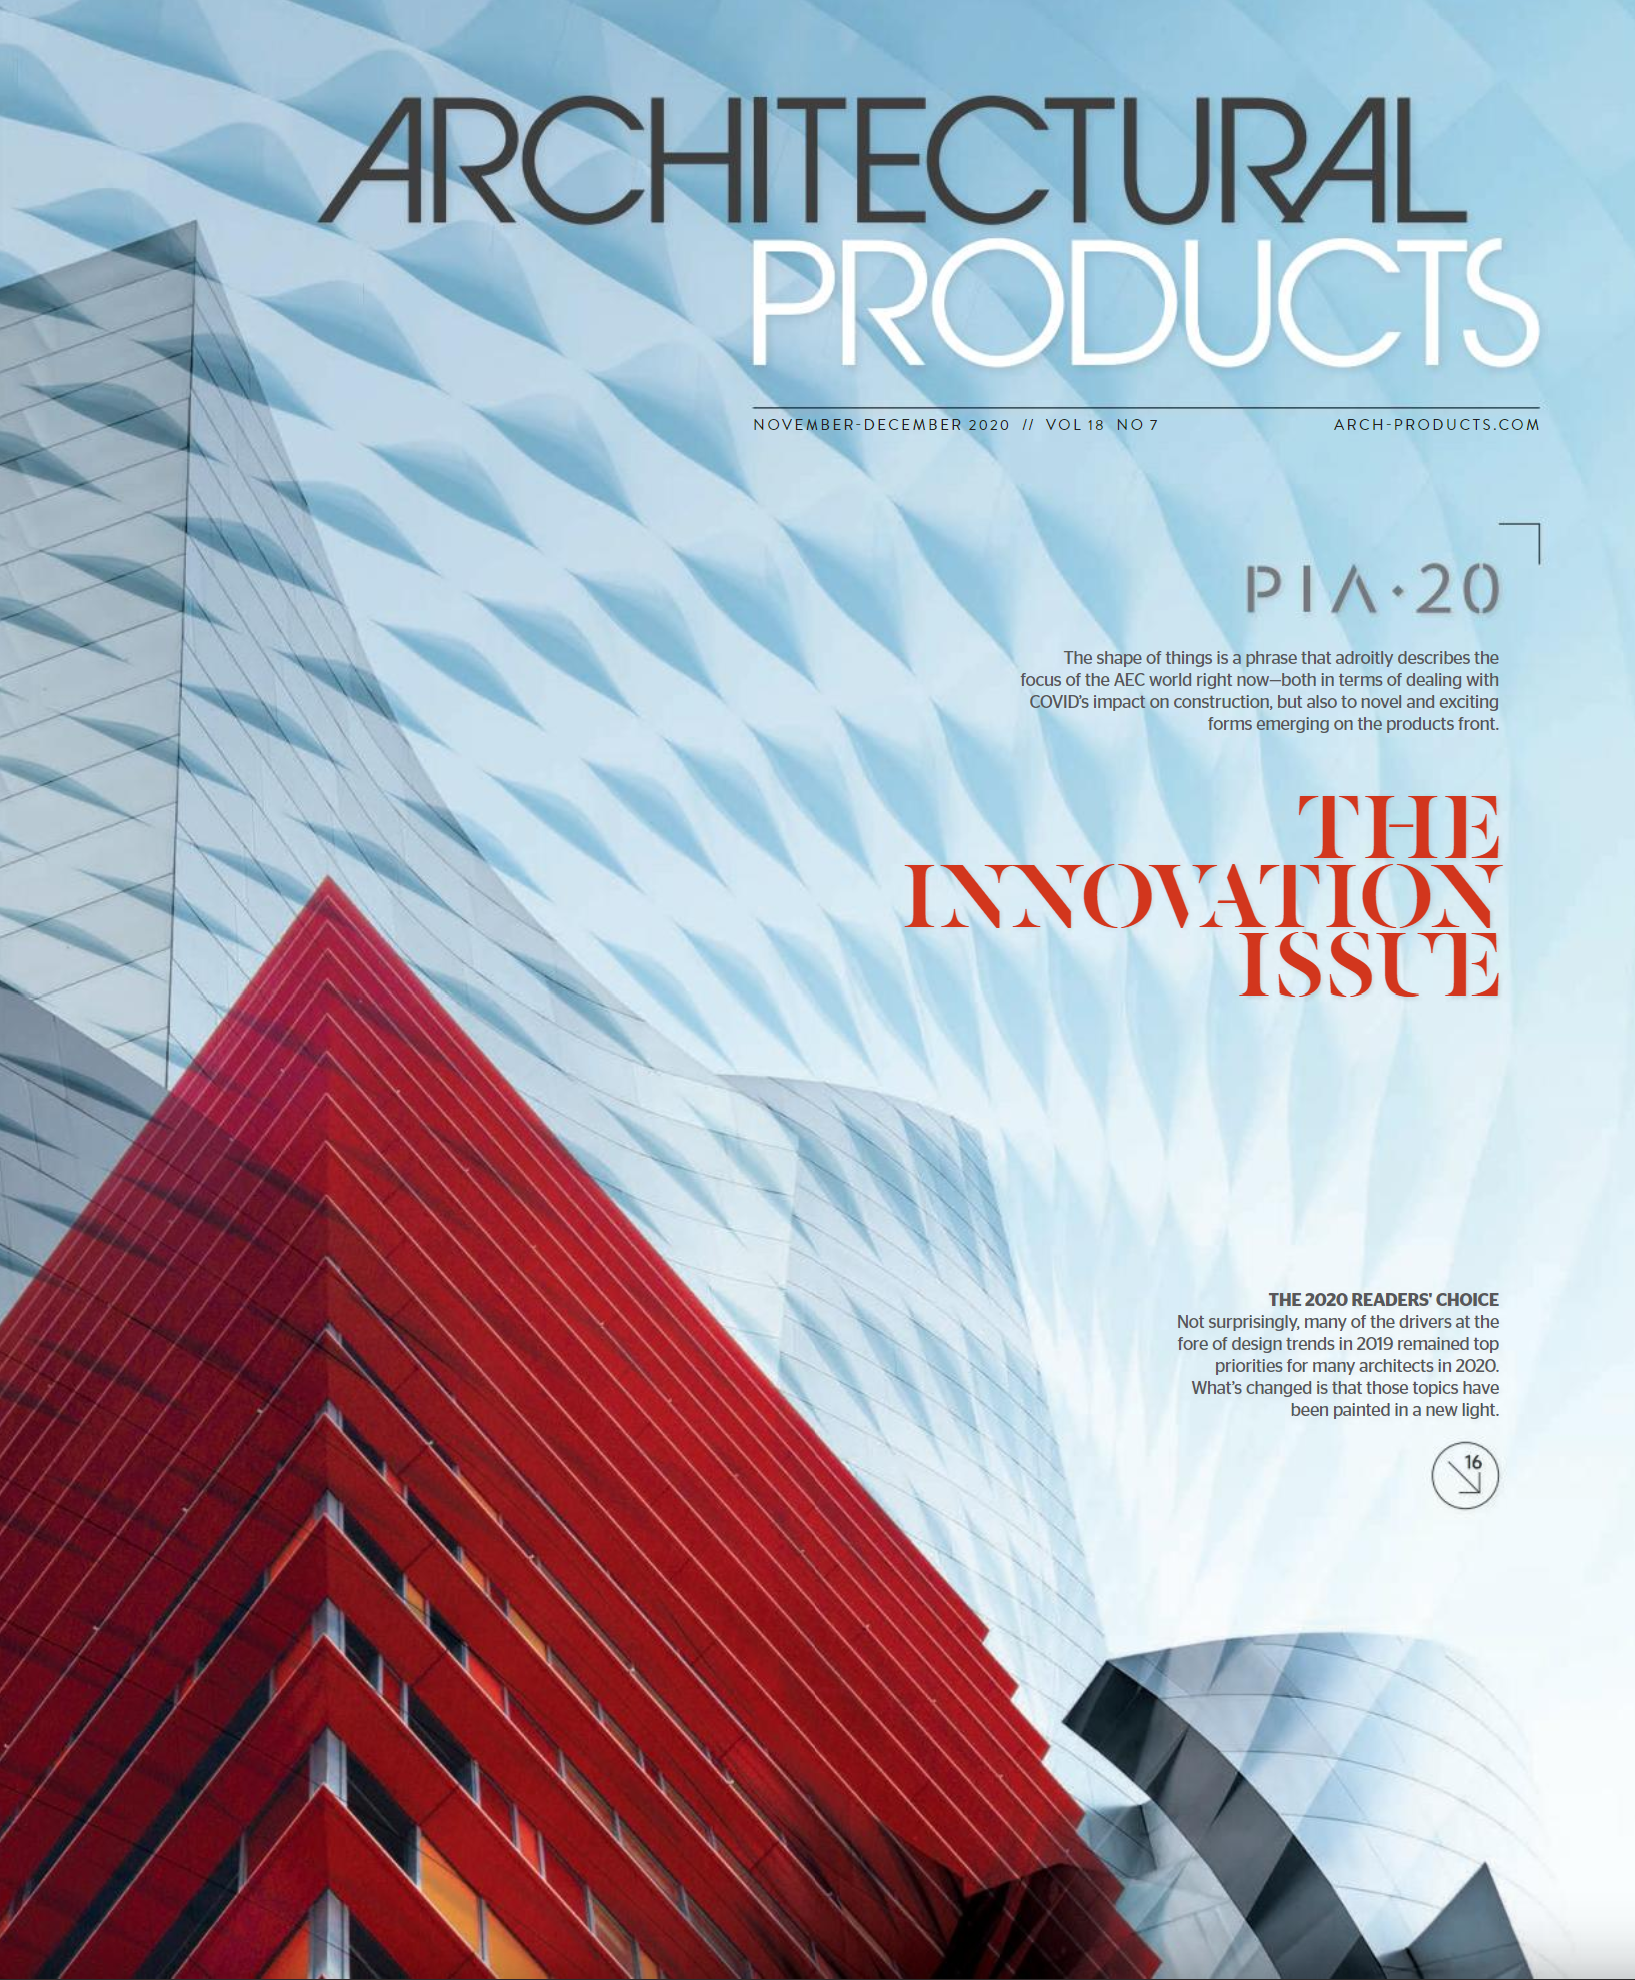 Architectural Products – November/December issue